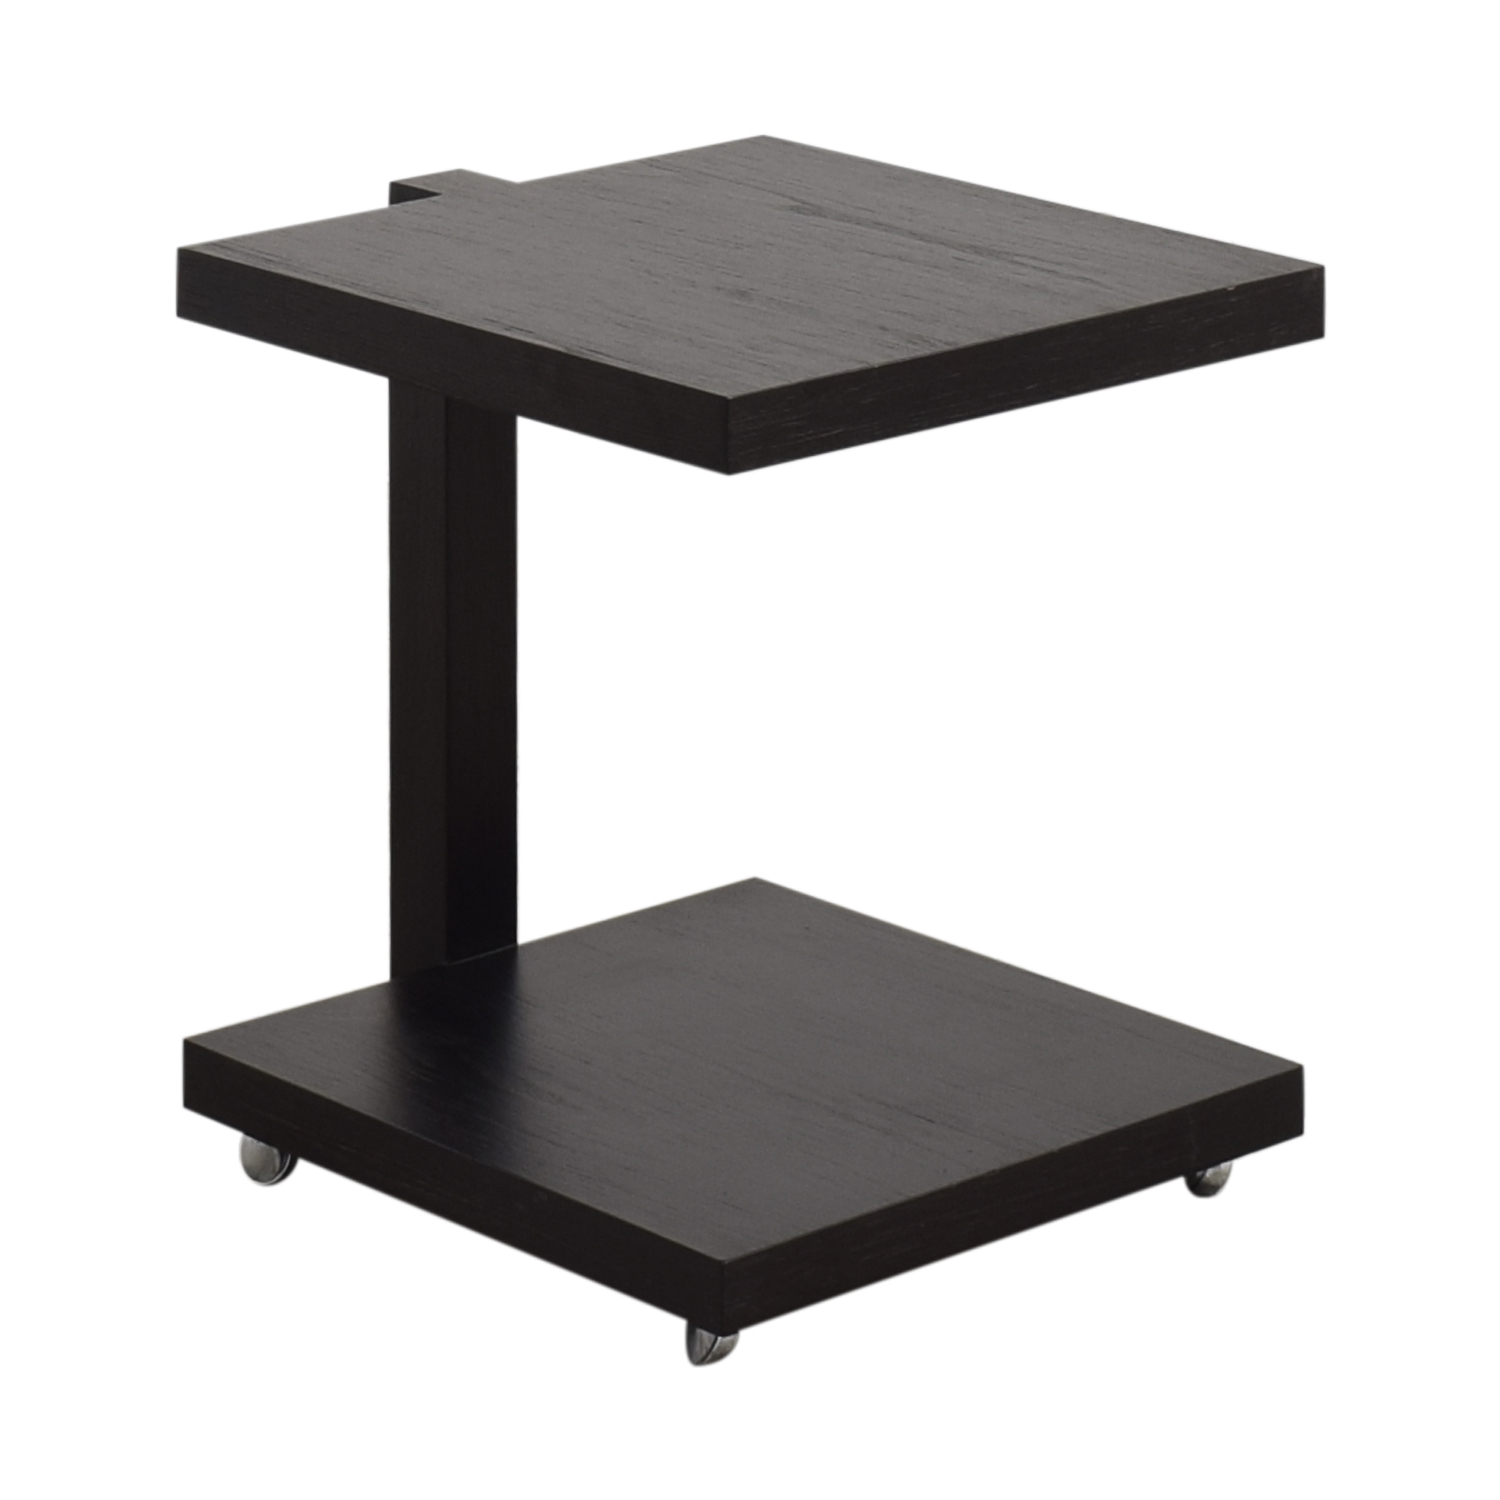 Moura Starr Moura Starr Floating Nightstand Tables